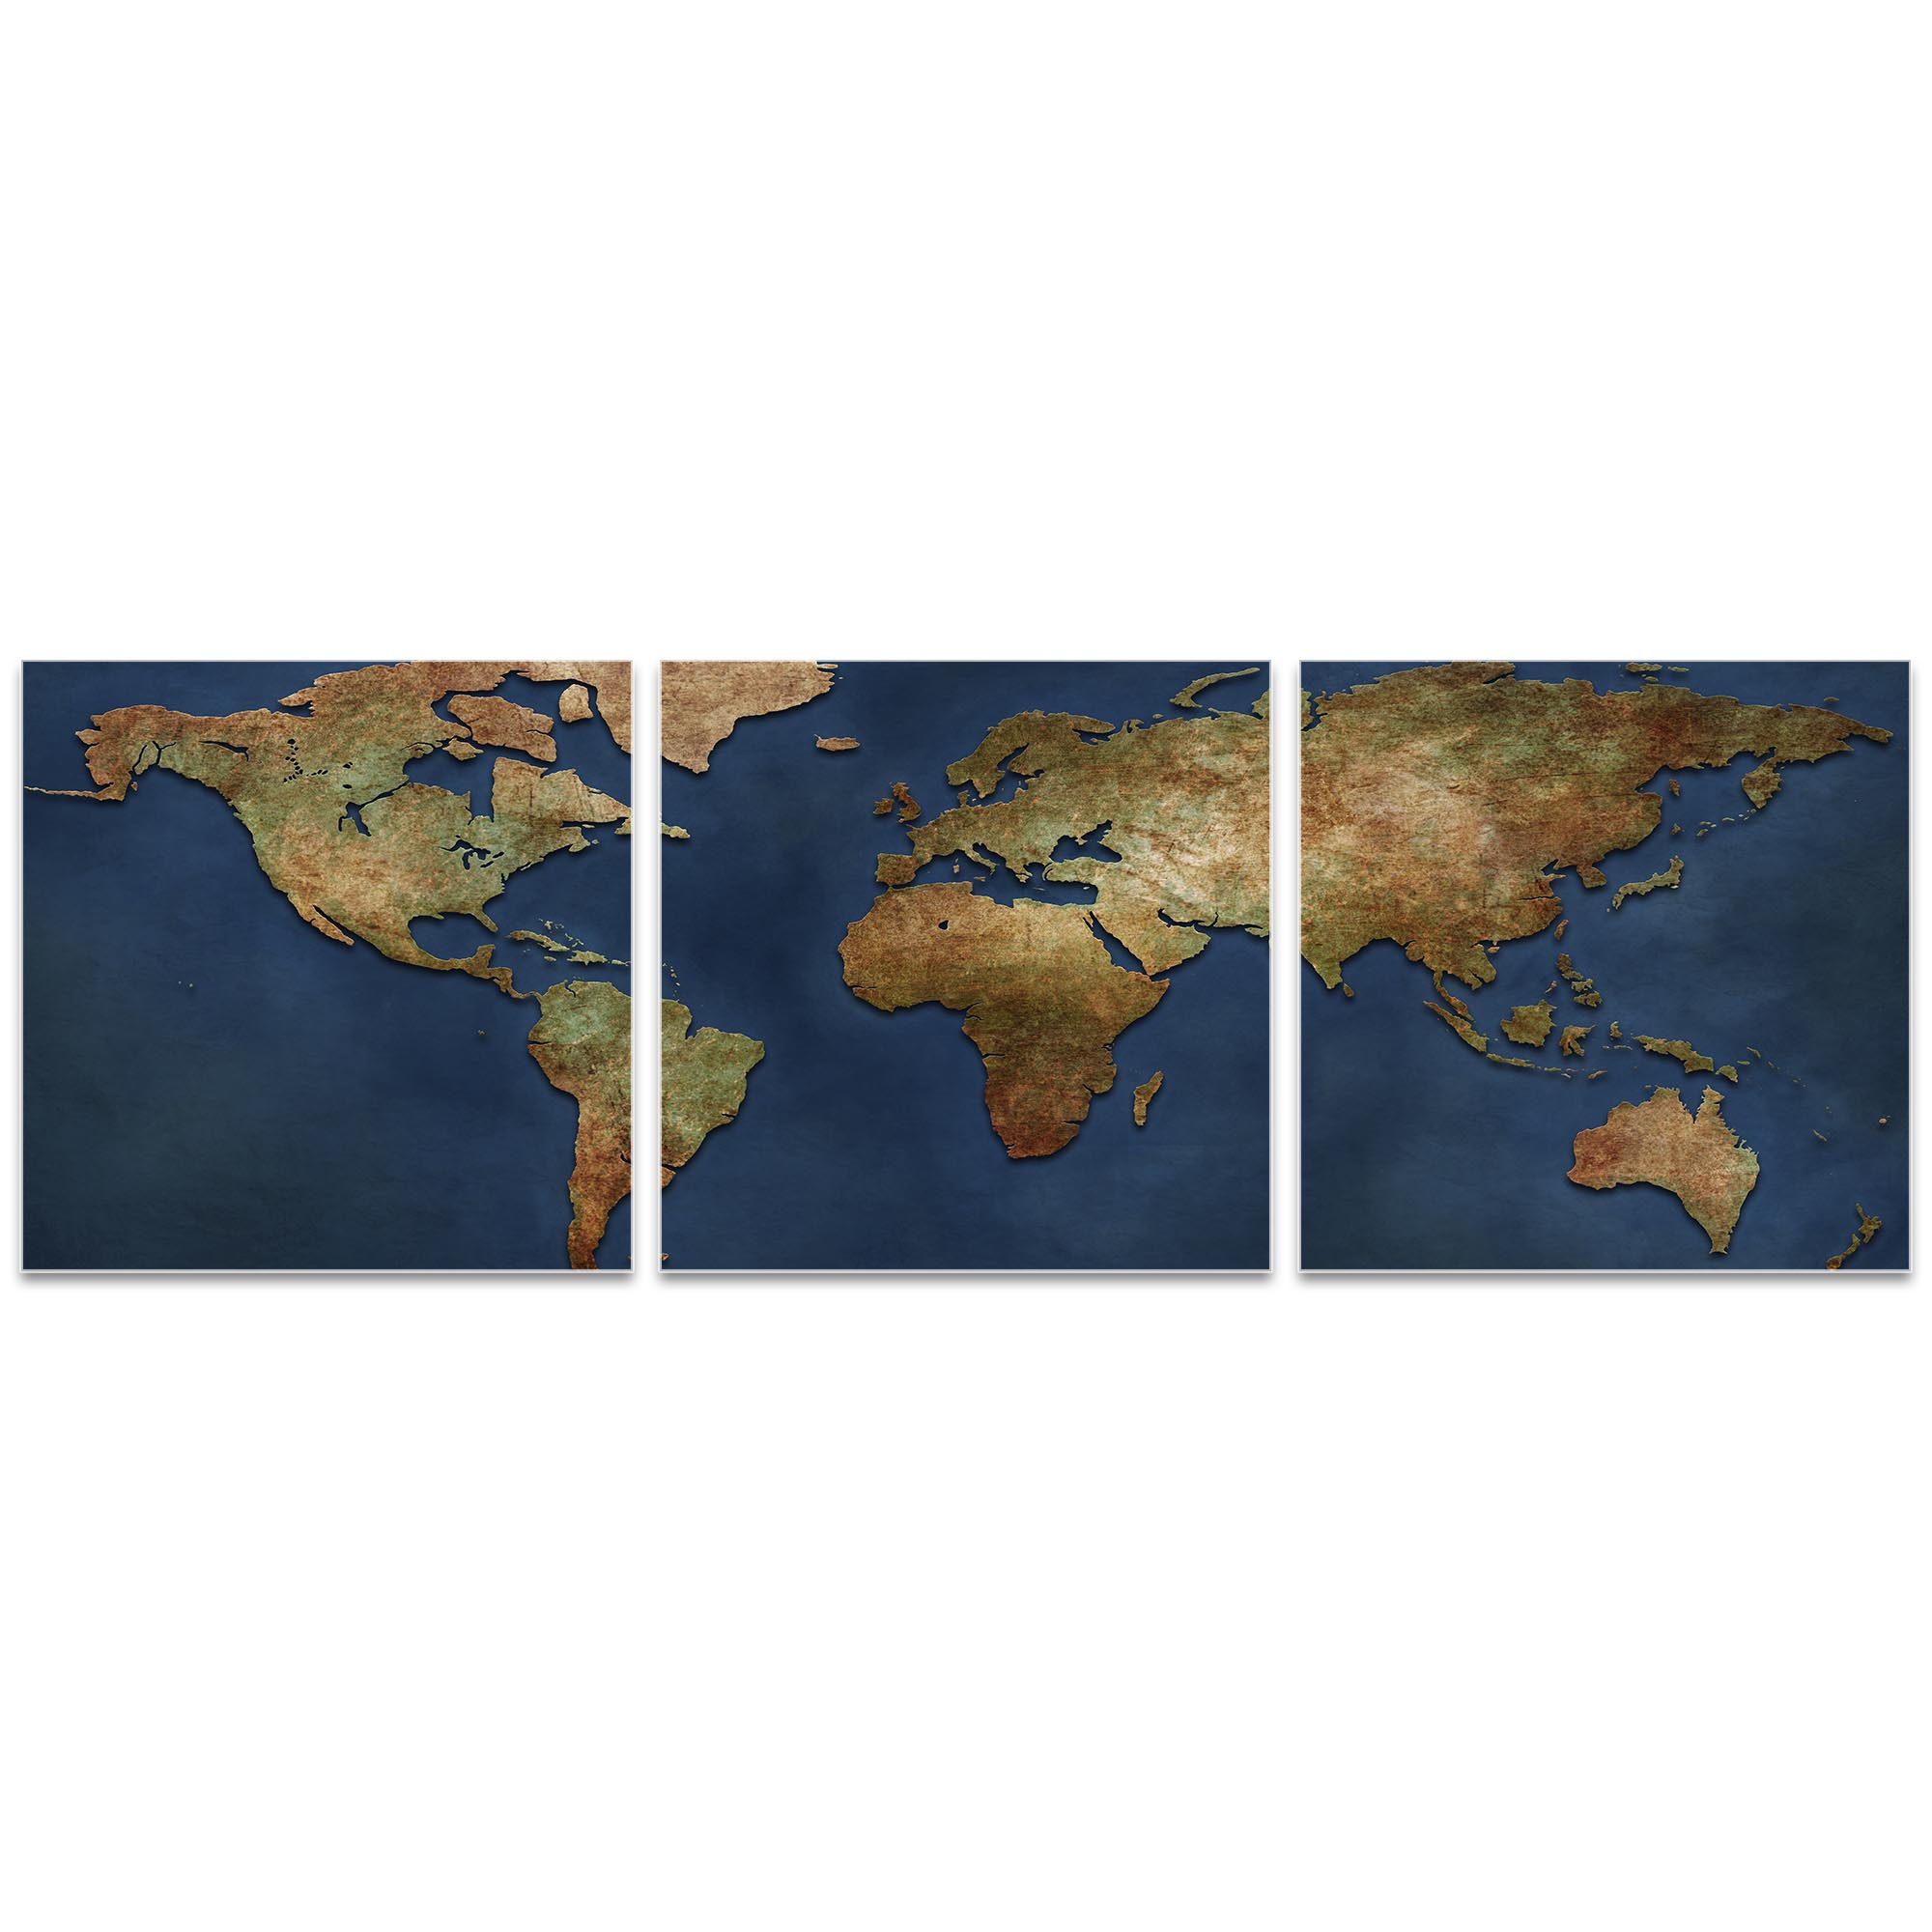 1800s World Map Triptych 38x12in. Metal or Acrylic Colonial Decor - Image 2